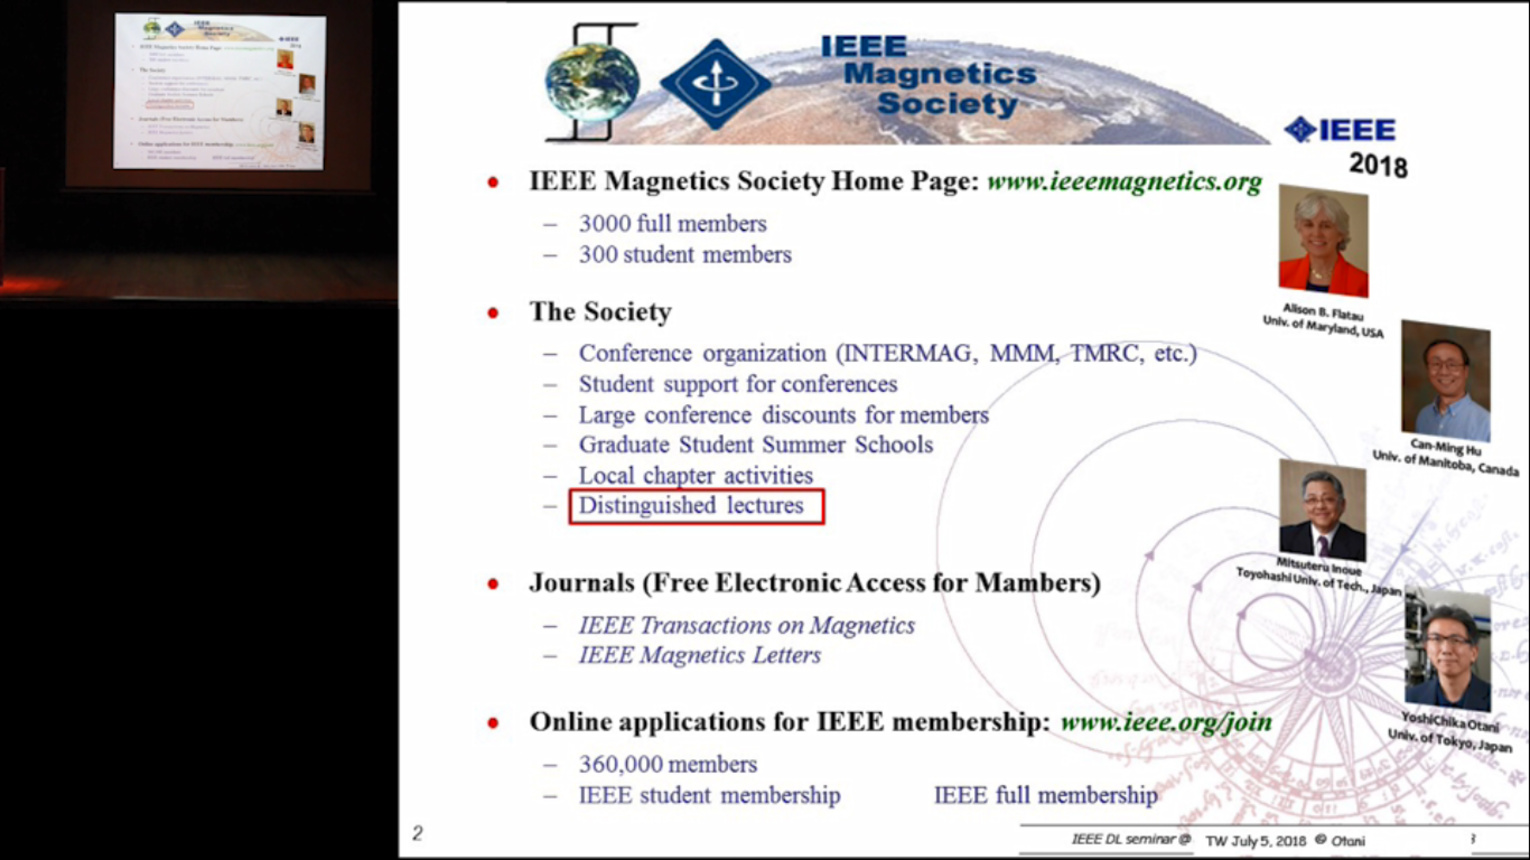 IEEE Magnetics Distinguished Lecture - Can-Ming Hu